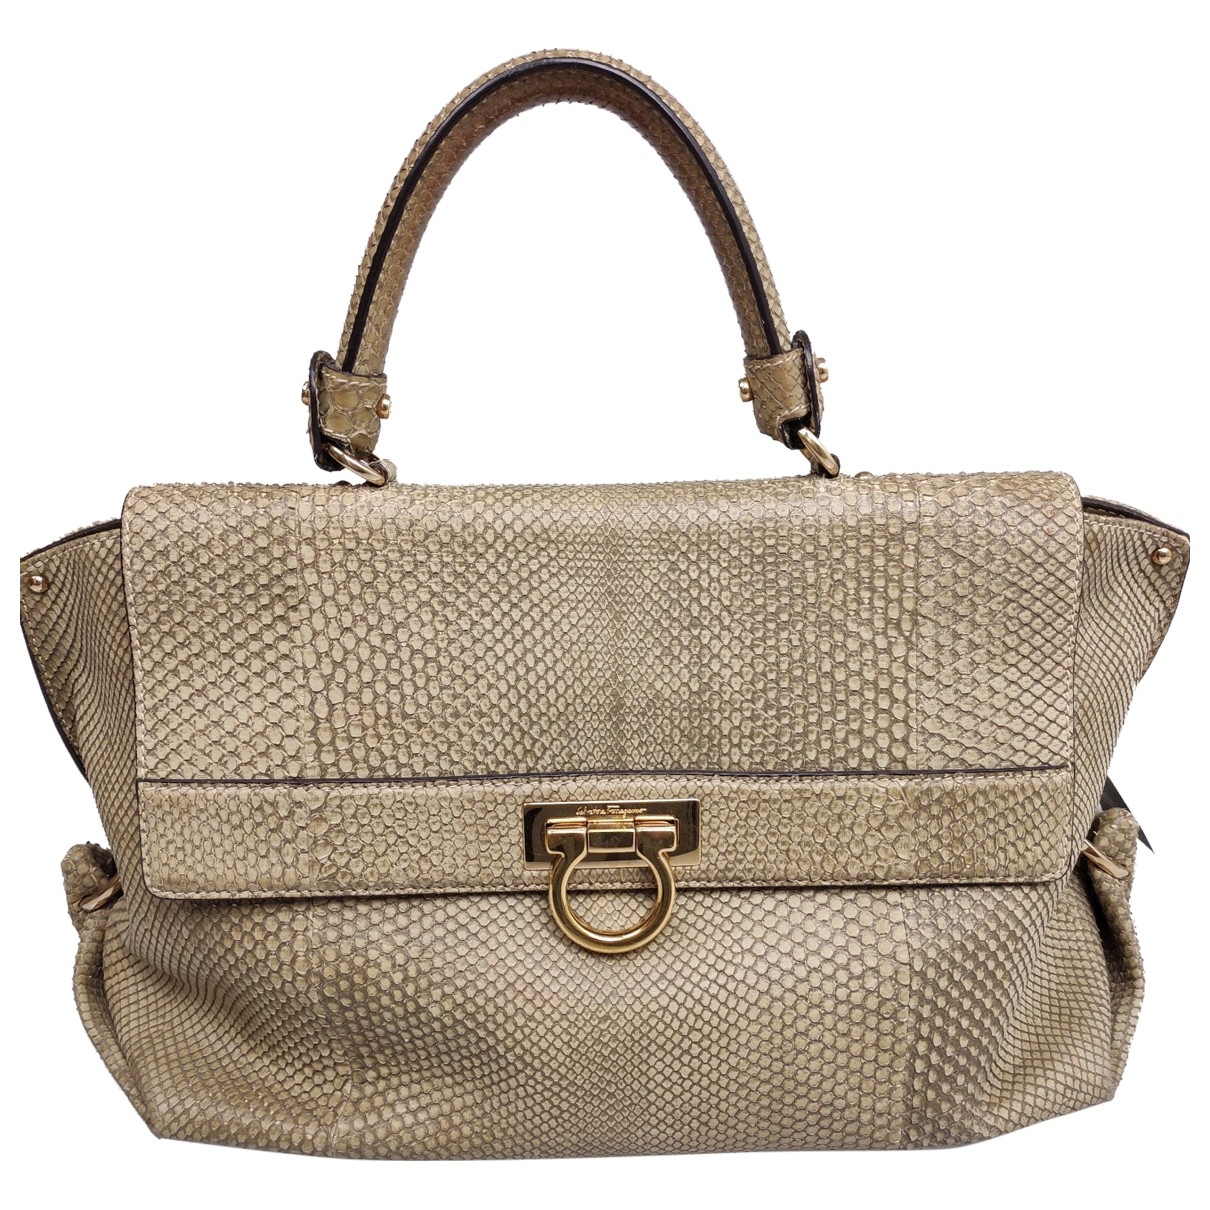 Salvatore Ferragamo Sofia Beige Water snake handbag for Women \N